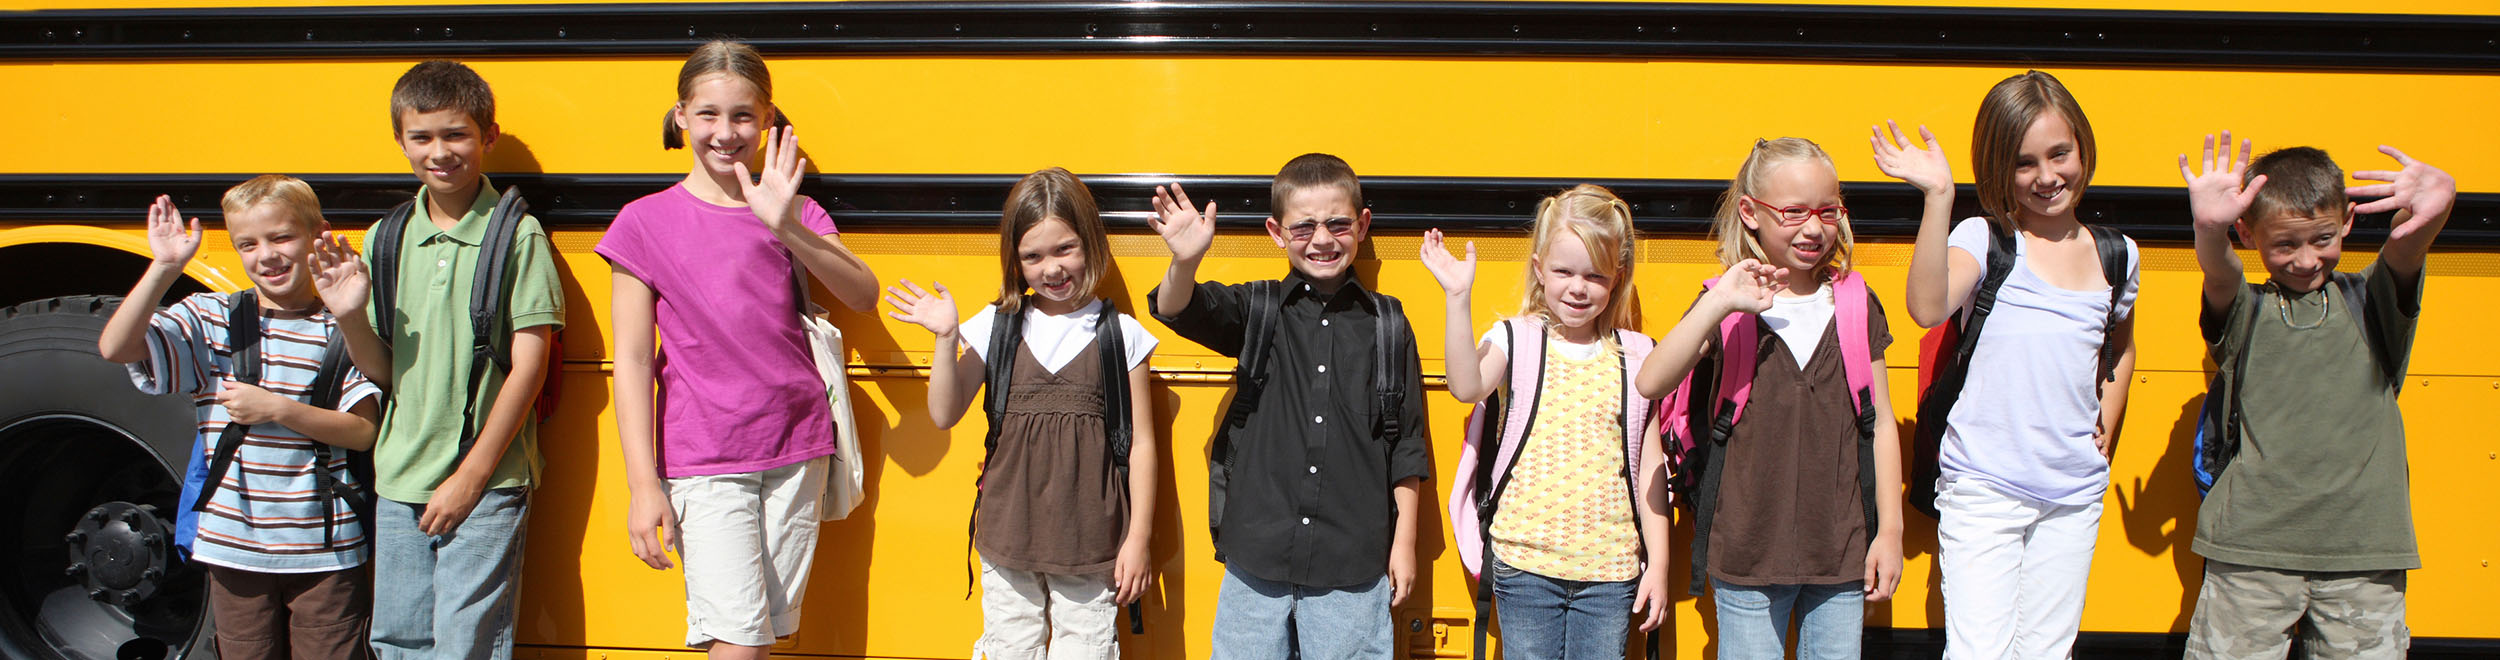 To Improve Student Safety And School Bus Driver Satisfaction